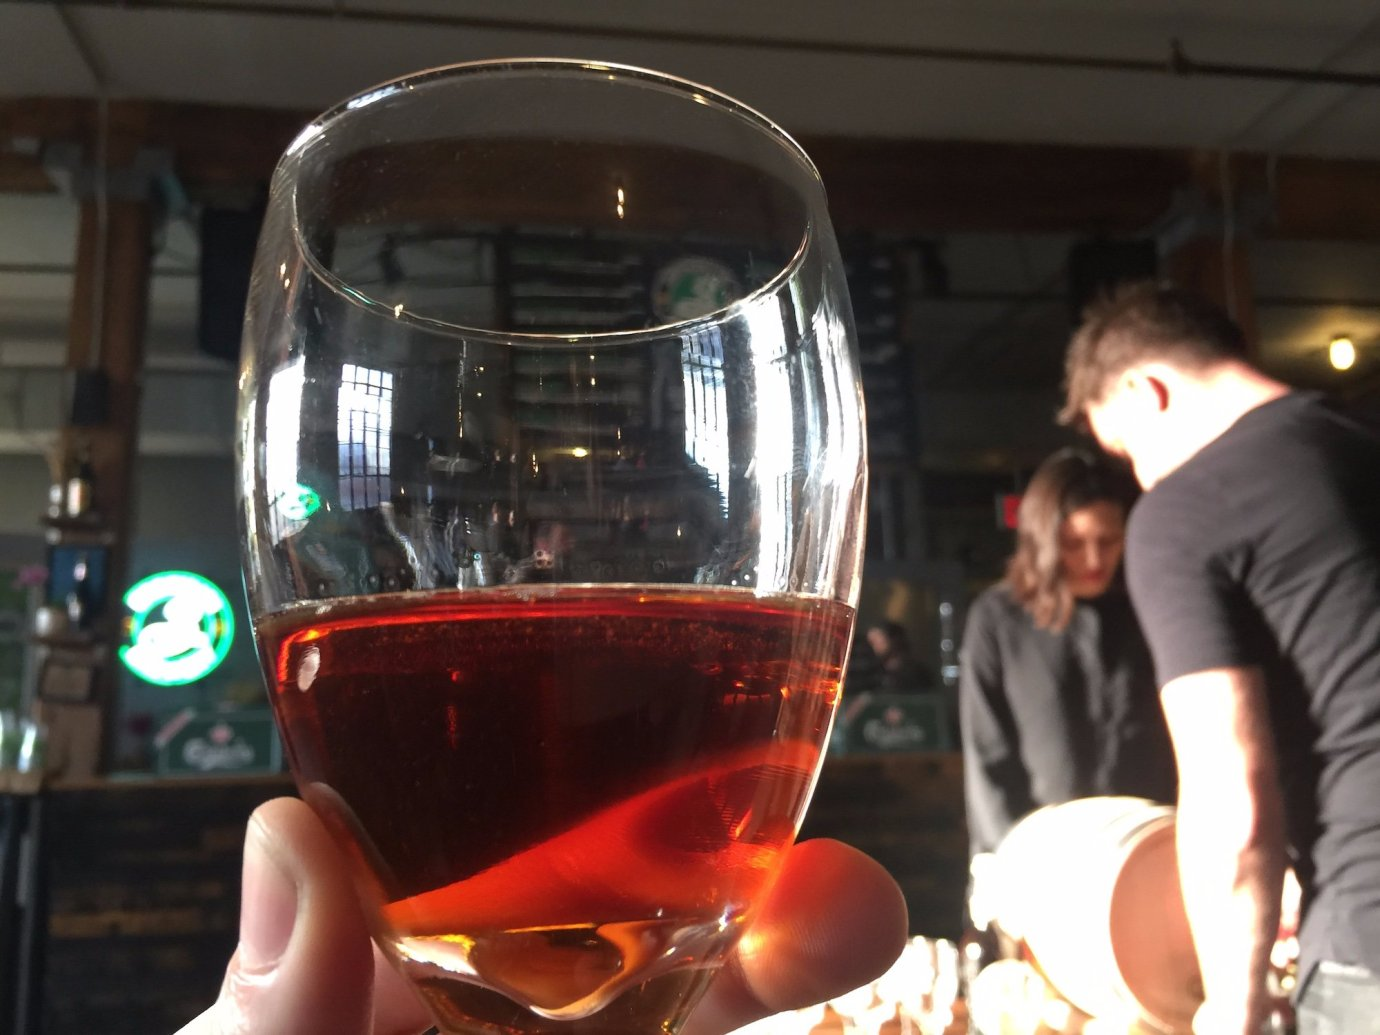 2016 11 1720144905 1 - Carlsberg Rebrew beer made with ancient lager yeast